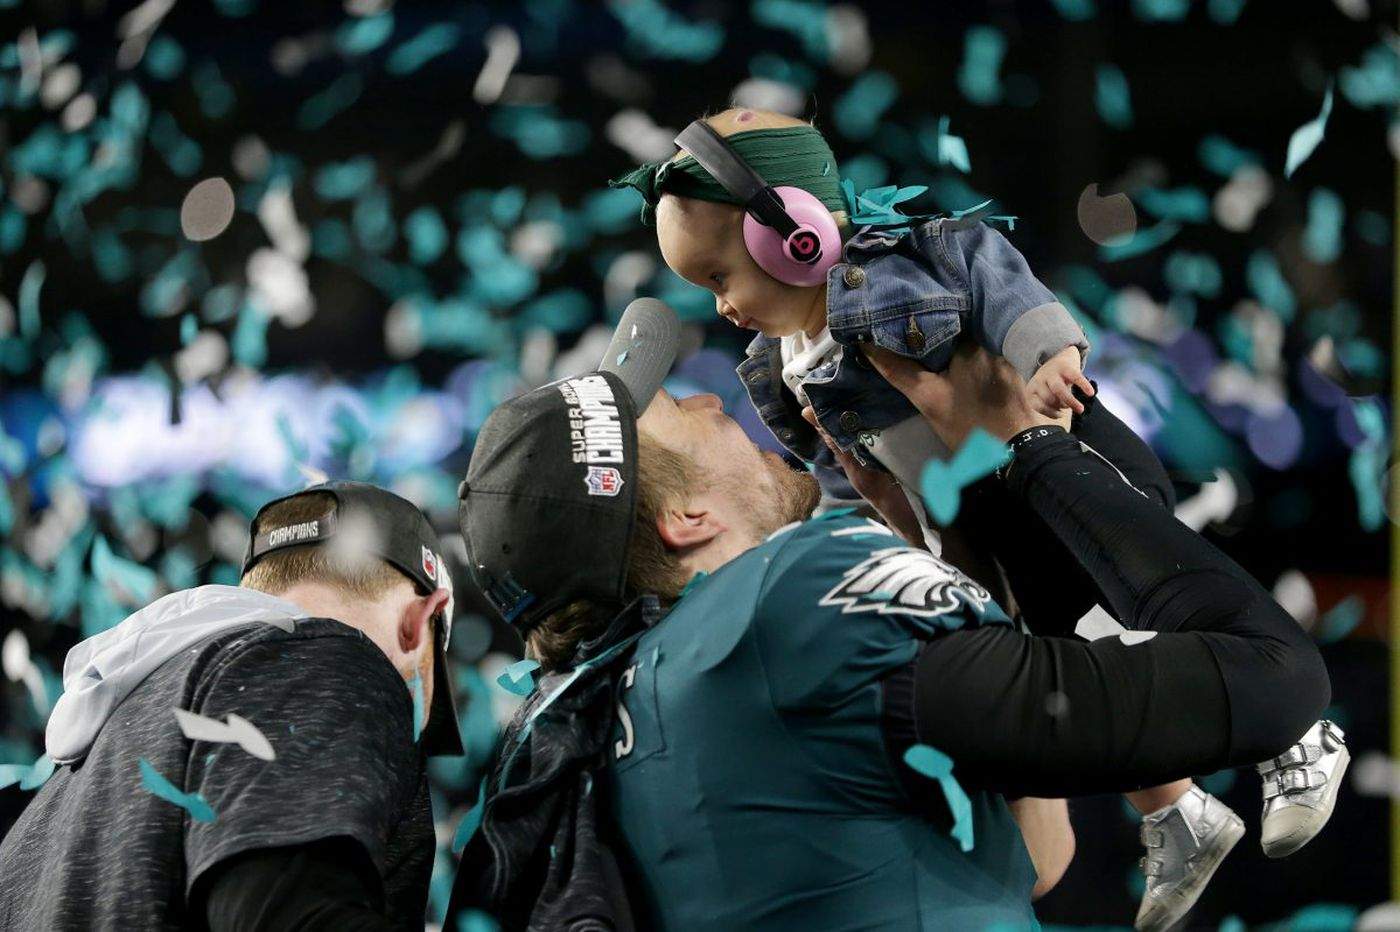 Nick Foles bids farewell to Eagles, city: 'Thank you, Philly'